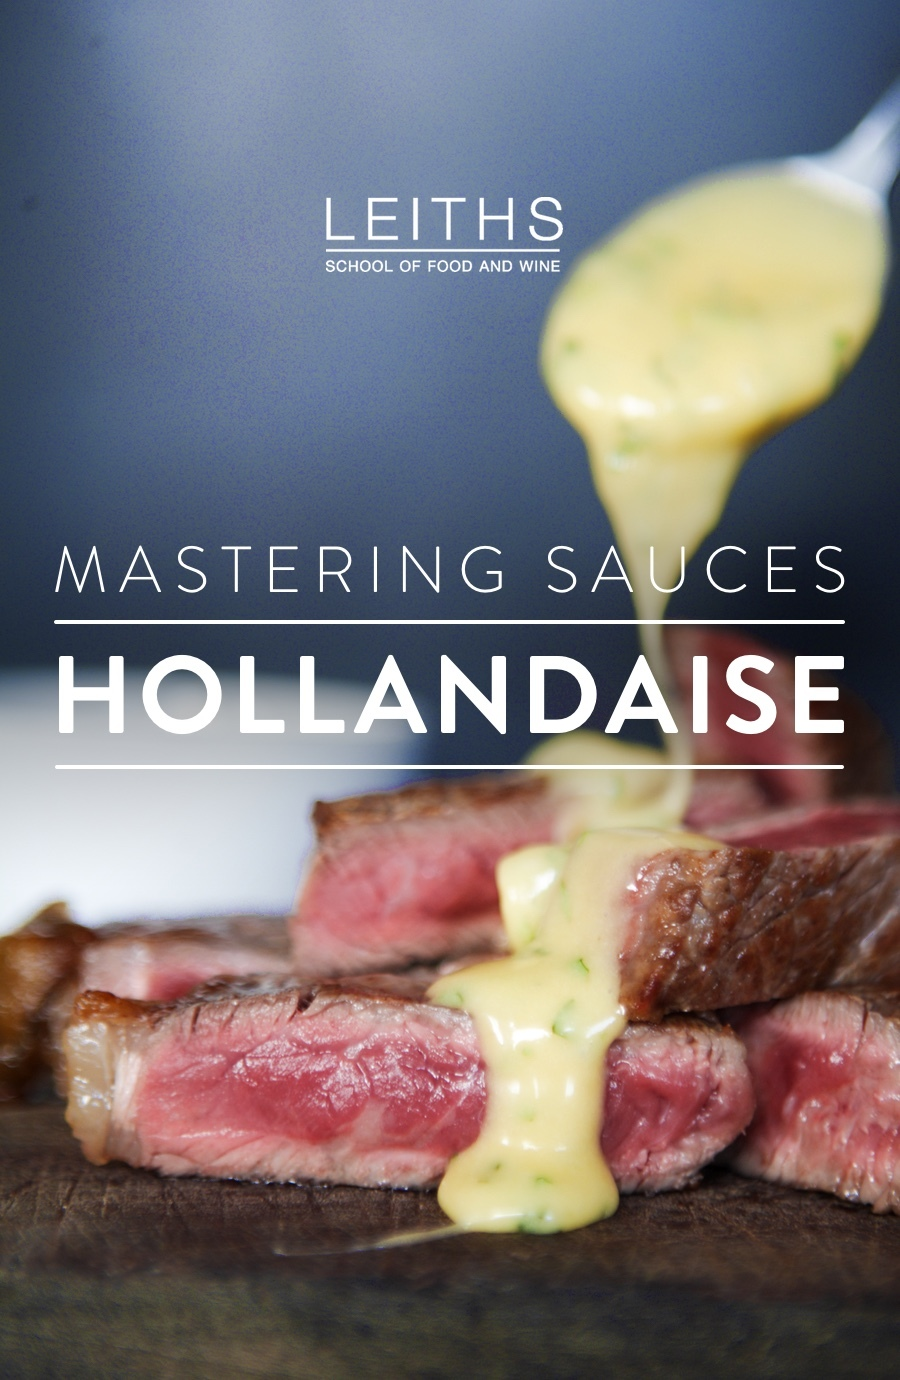 Master Hollandaise Sauces